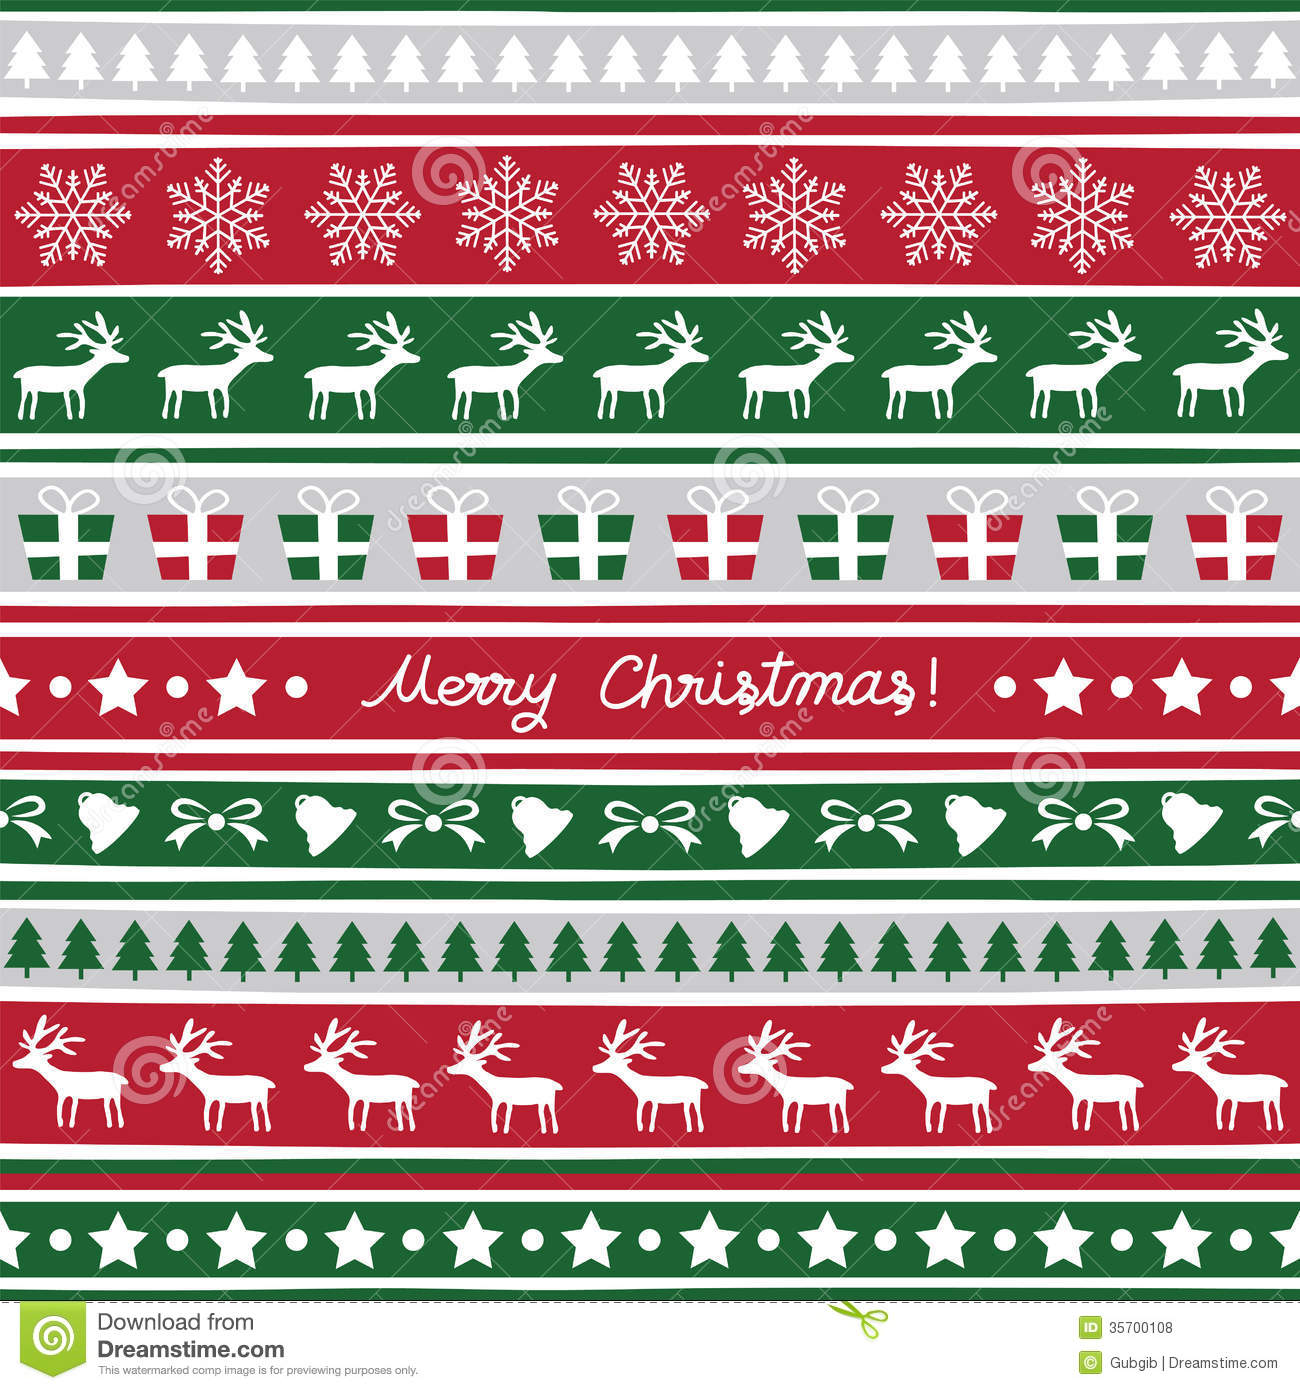 Vintage christmas tumblr backgrounds tumblr backgrounds vintage - Christmas Background Pattern Viewing Gallery